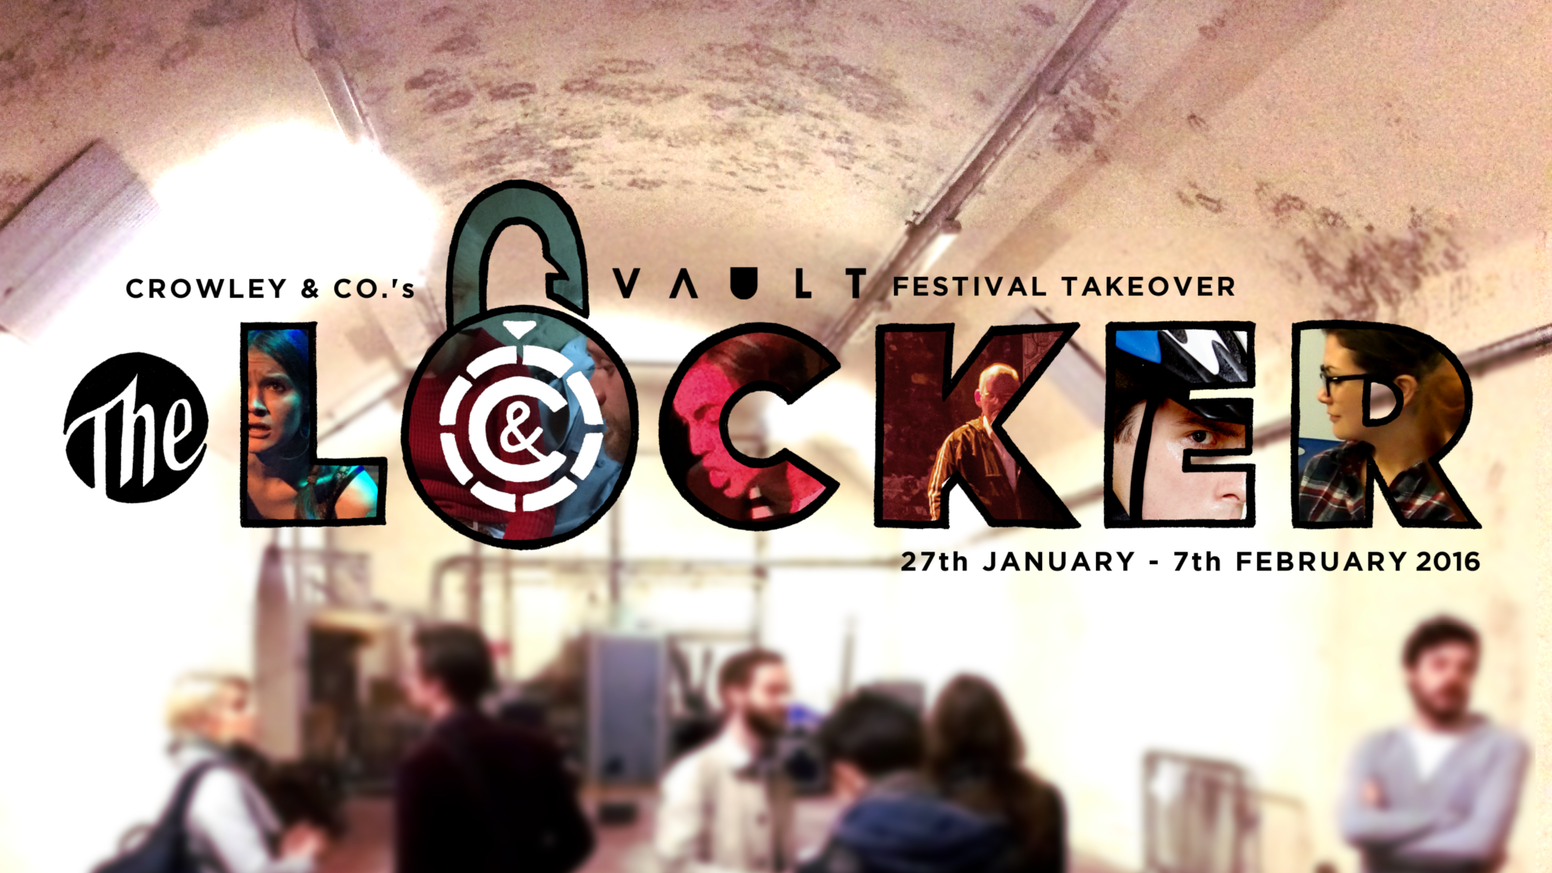 Crowley & Co. are taking over an entire room of VAULT Festival 2016 for two weeks of new plays, music, workshops and comedy.